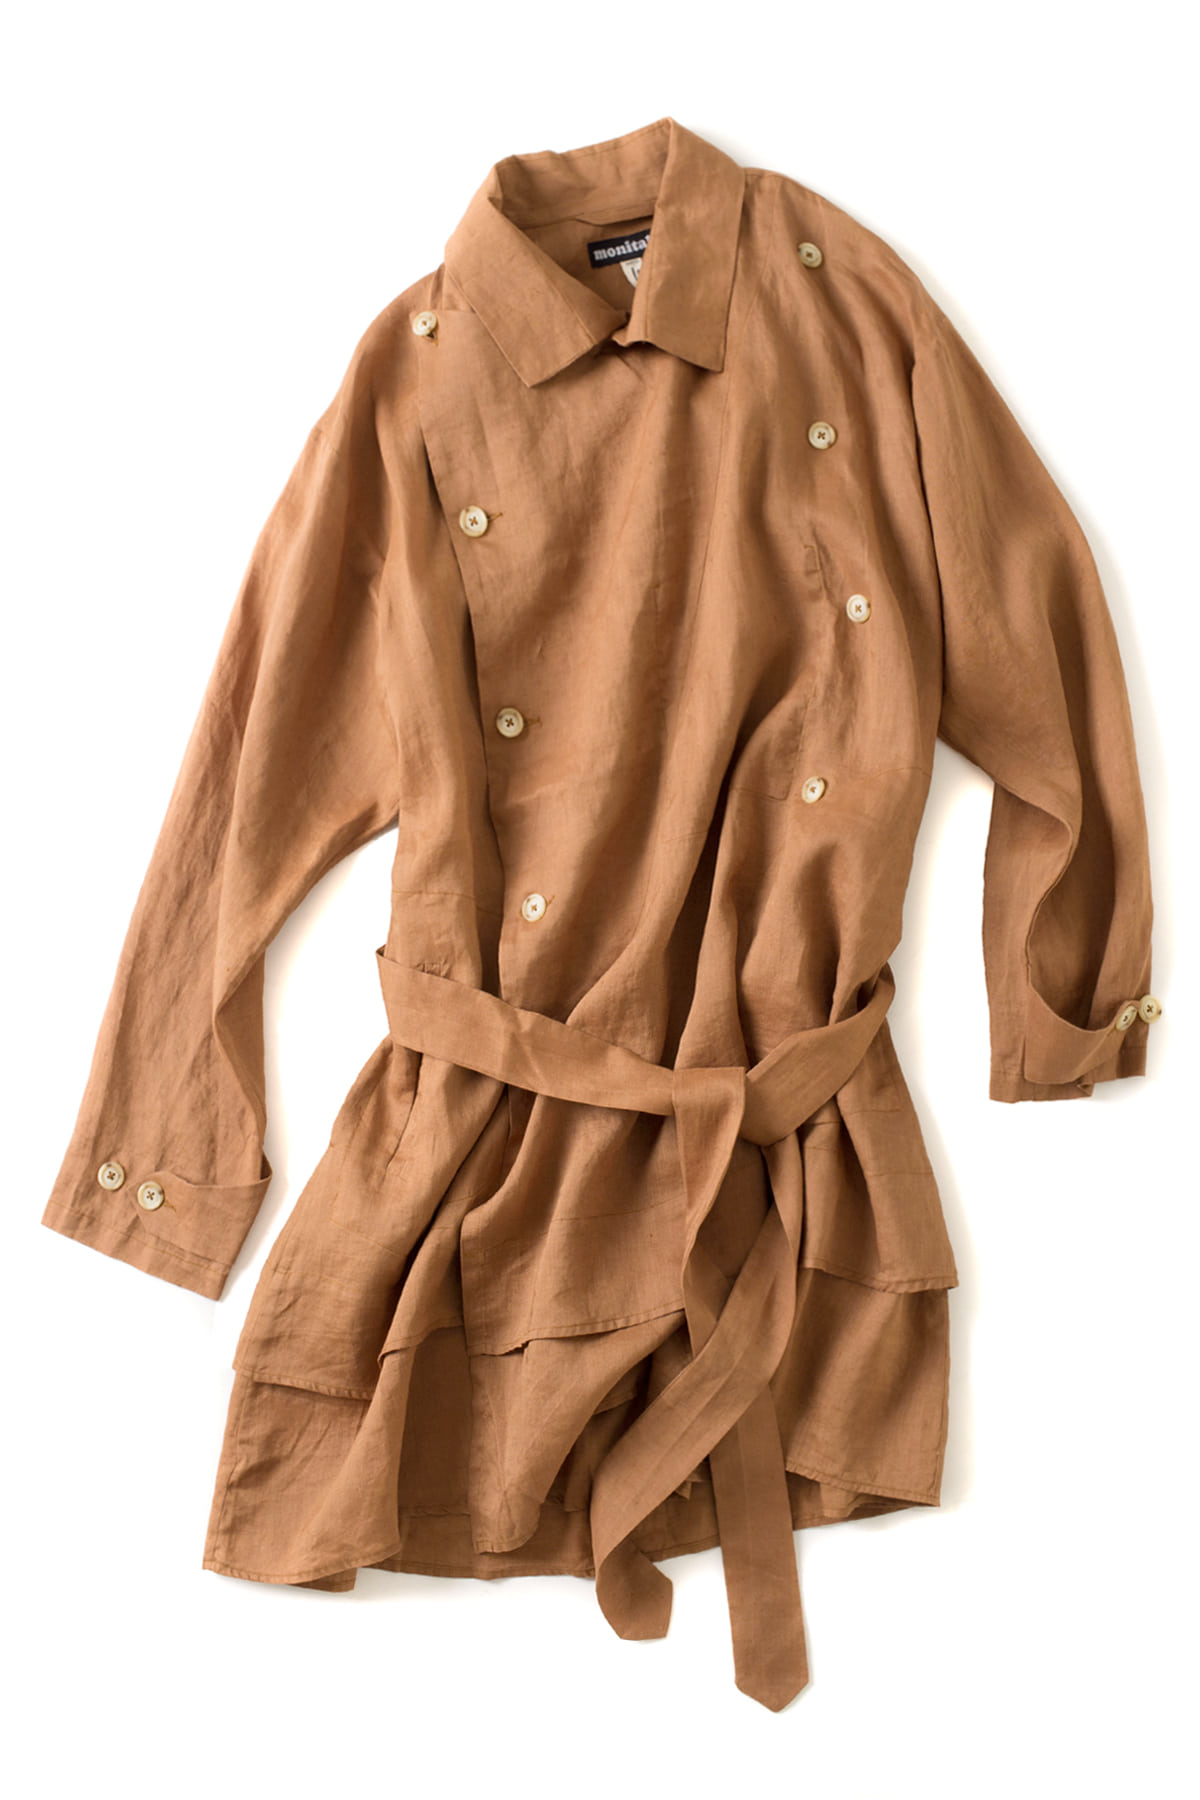 MONITALY : Spring Coat (Brown)